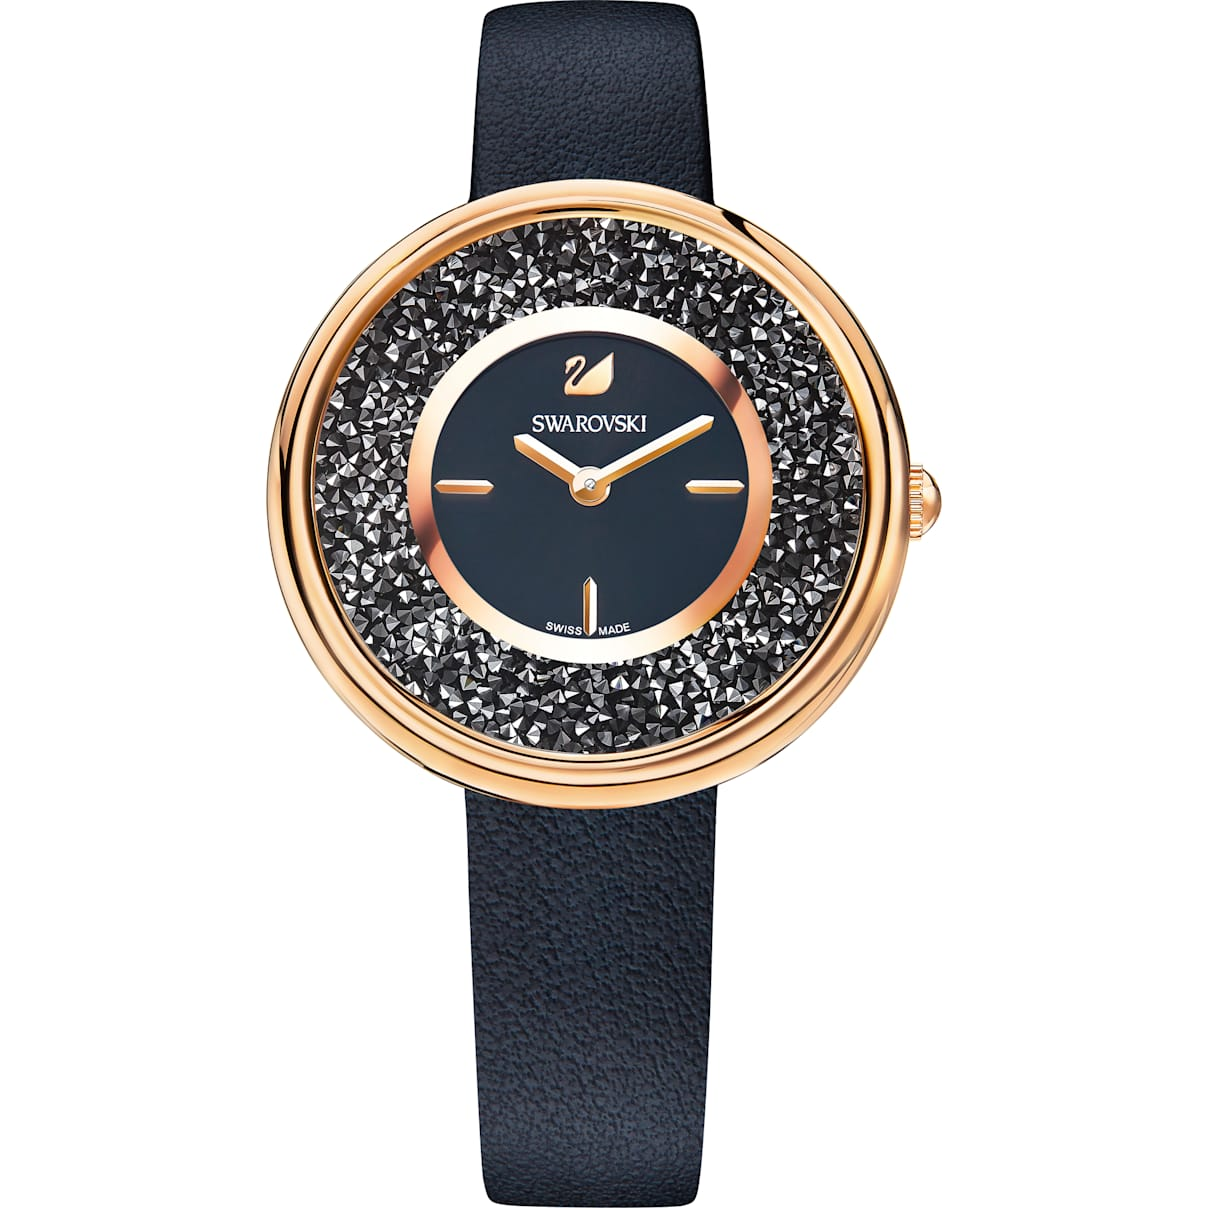 Swarovski Crystalline Pure Watch, Leather strap, Black, Rose-gold tone PVD